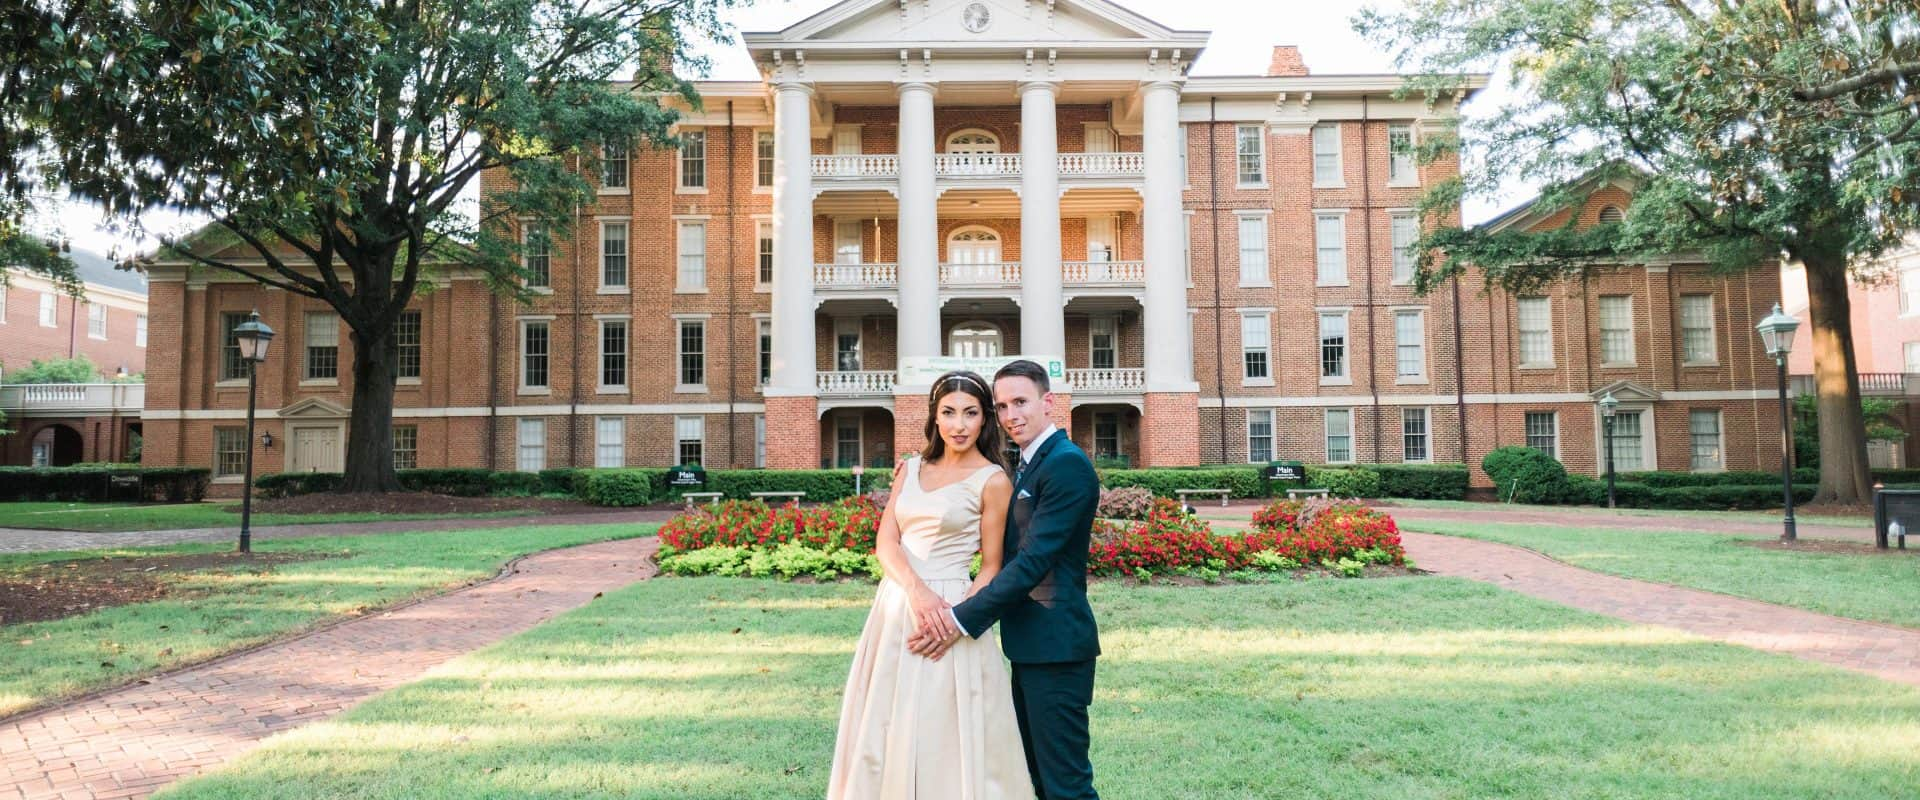 A bride and Groom in front of Main Building after being married on campus.